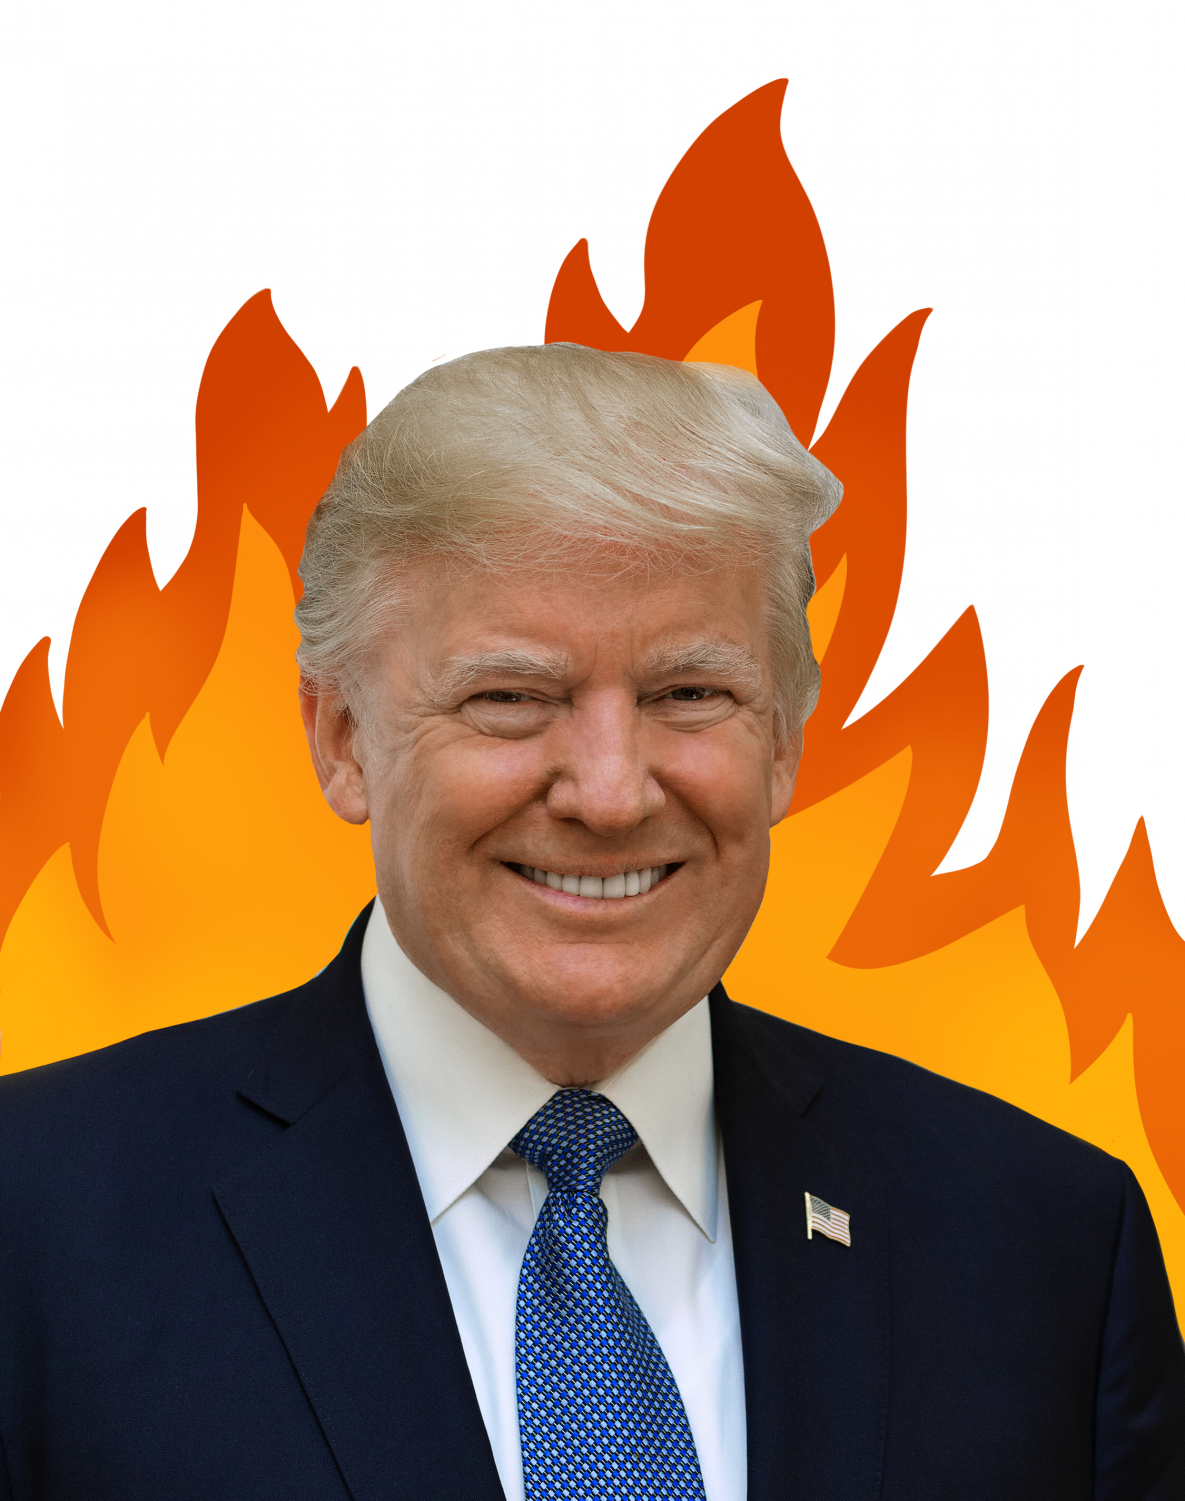 President Donald Trump smiles in front of the California wildfires.